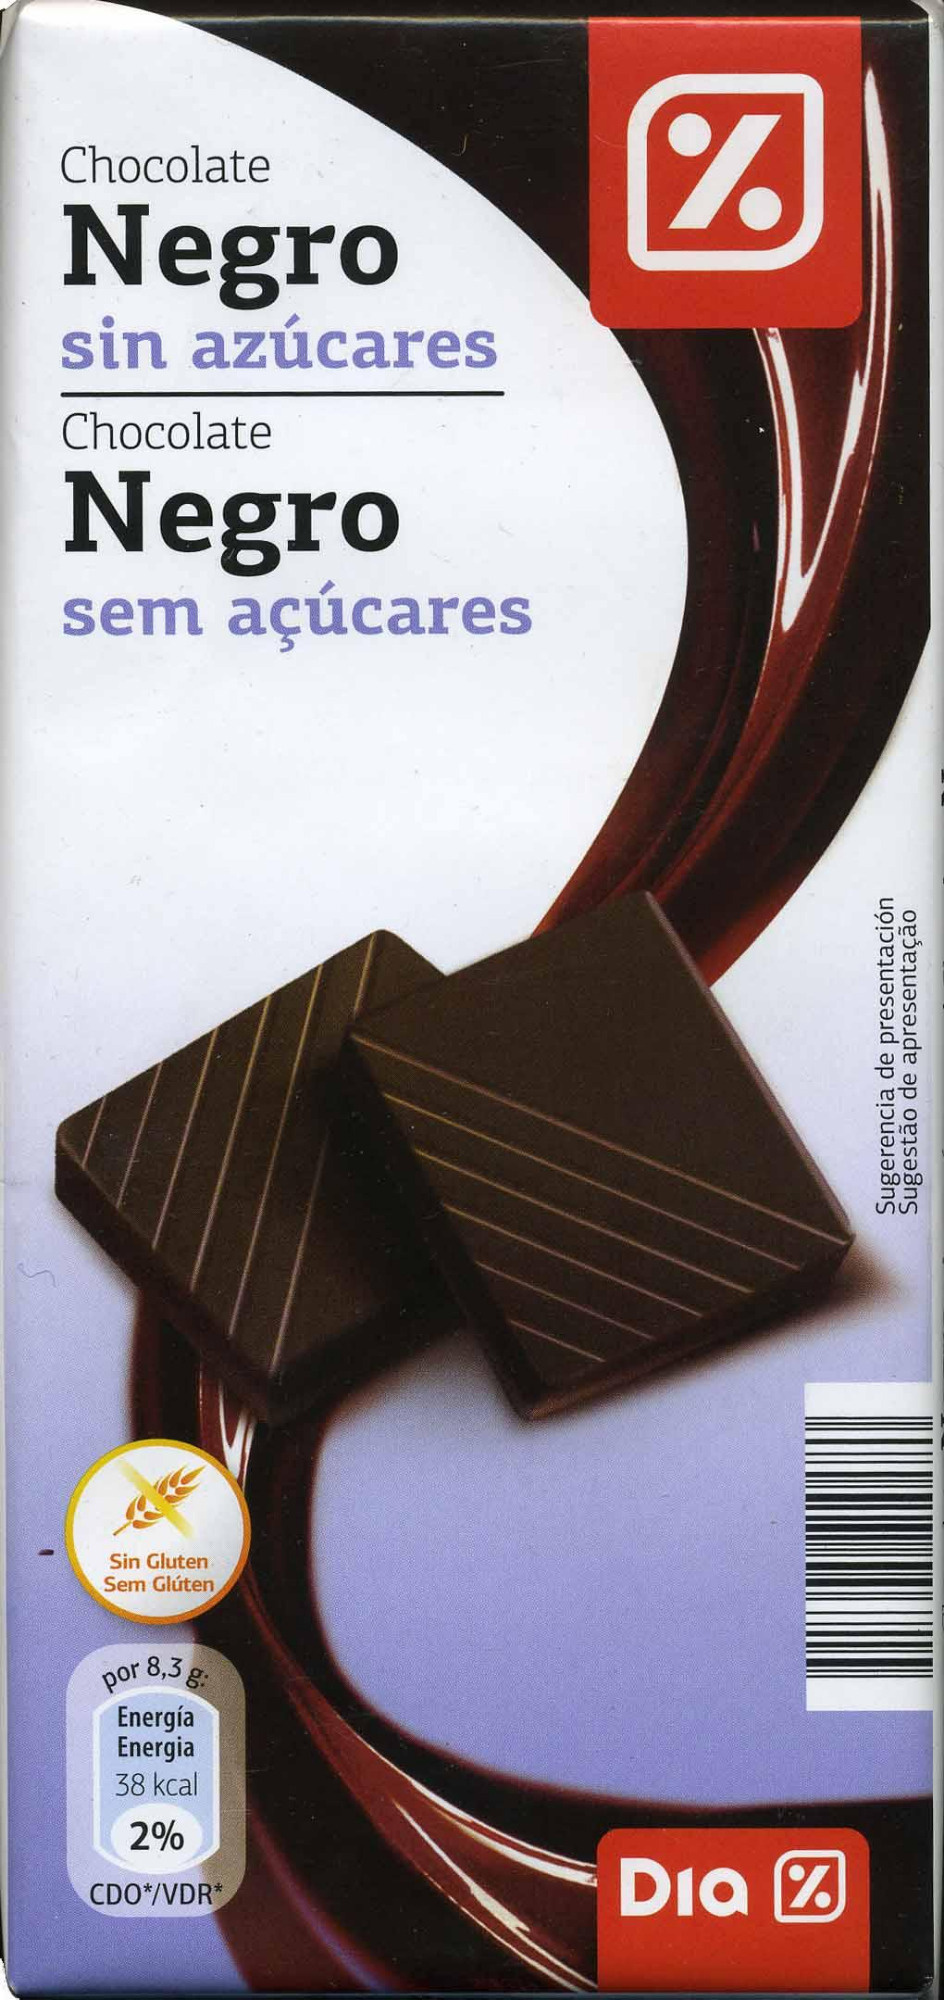 Tableta de chocolate negro sin azúcares - Product